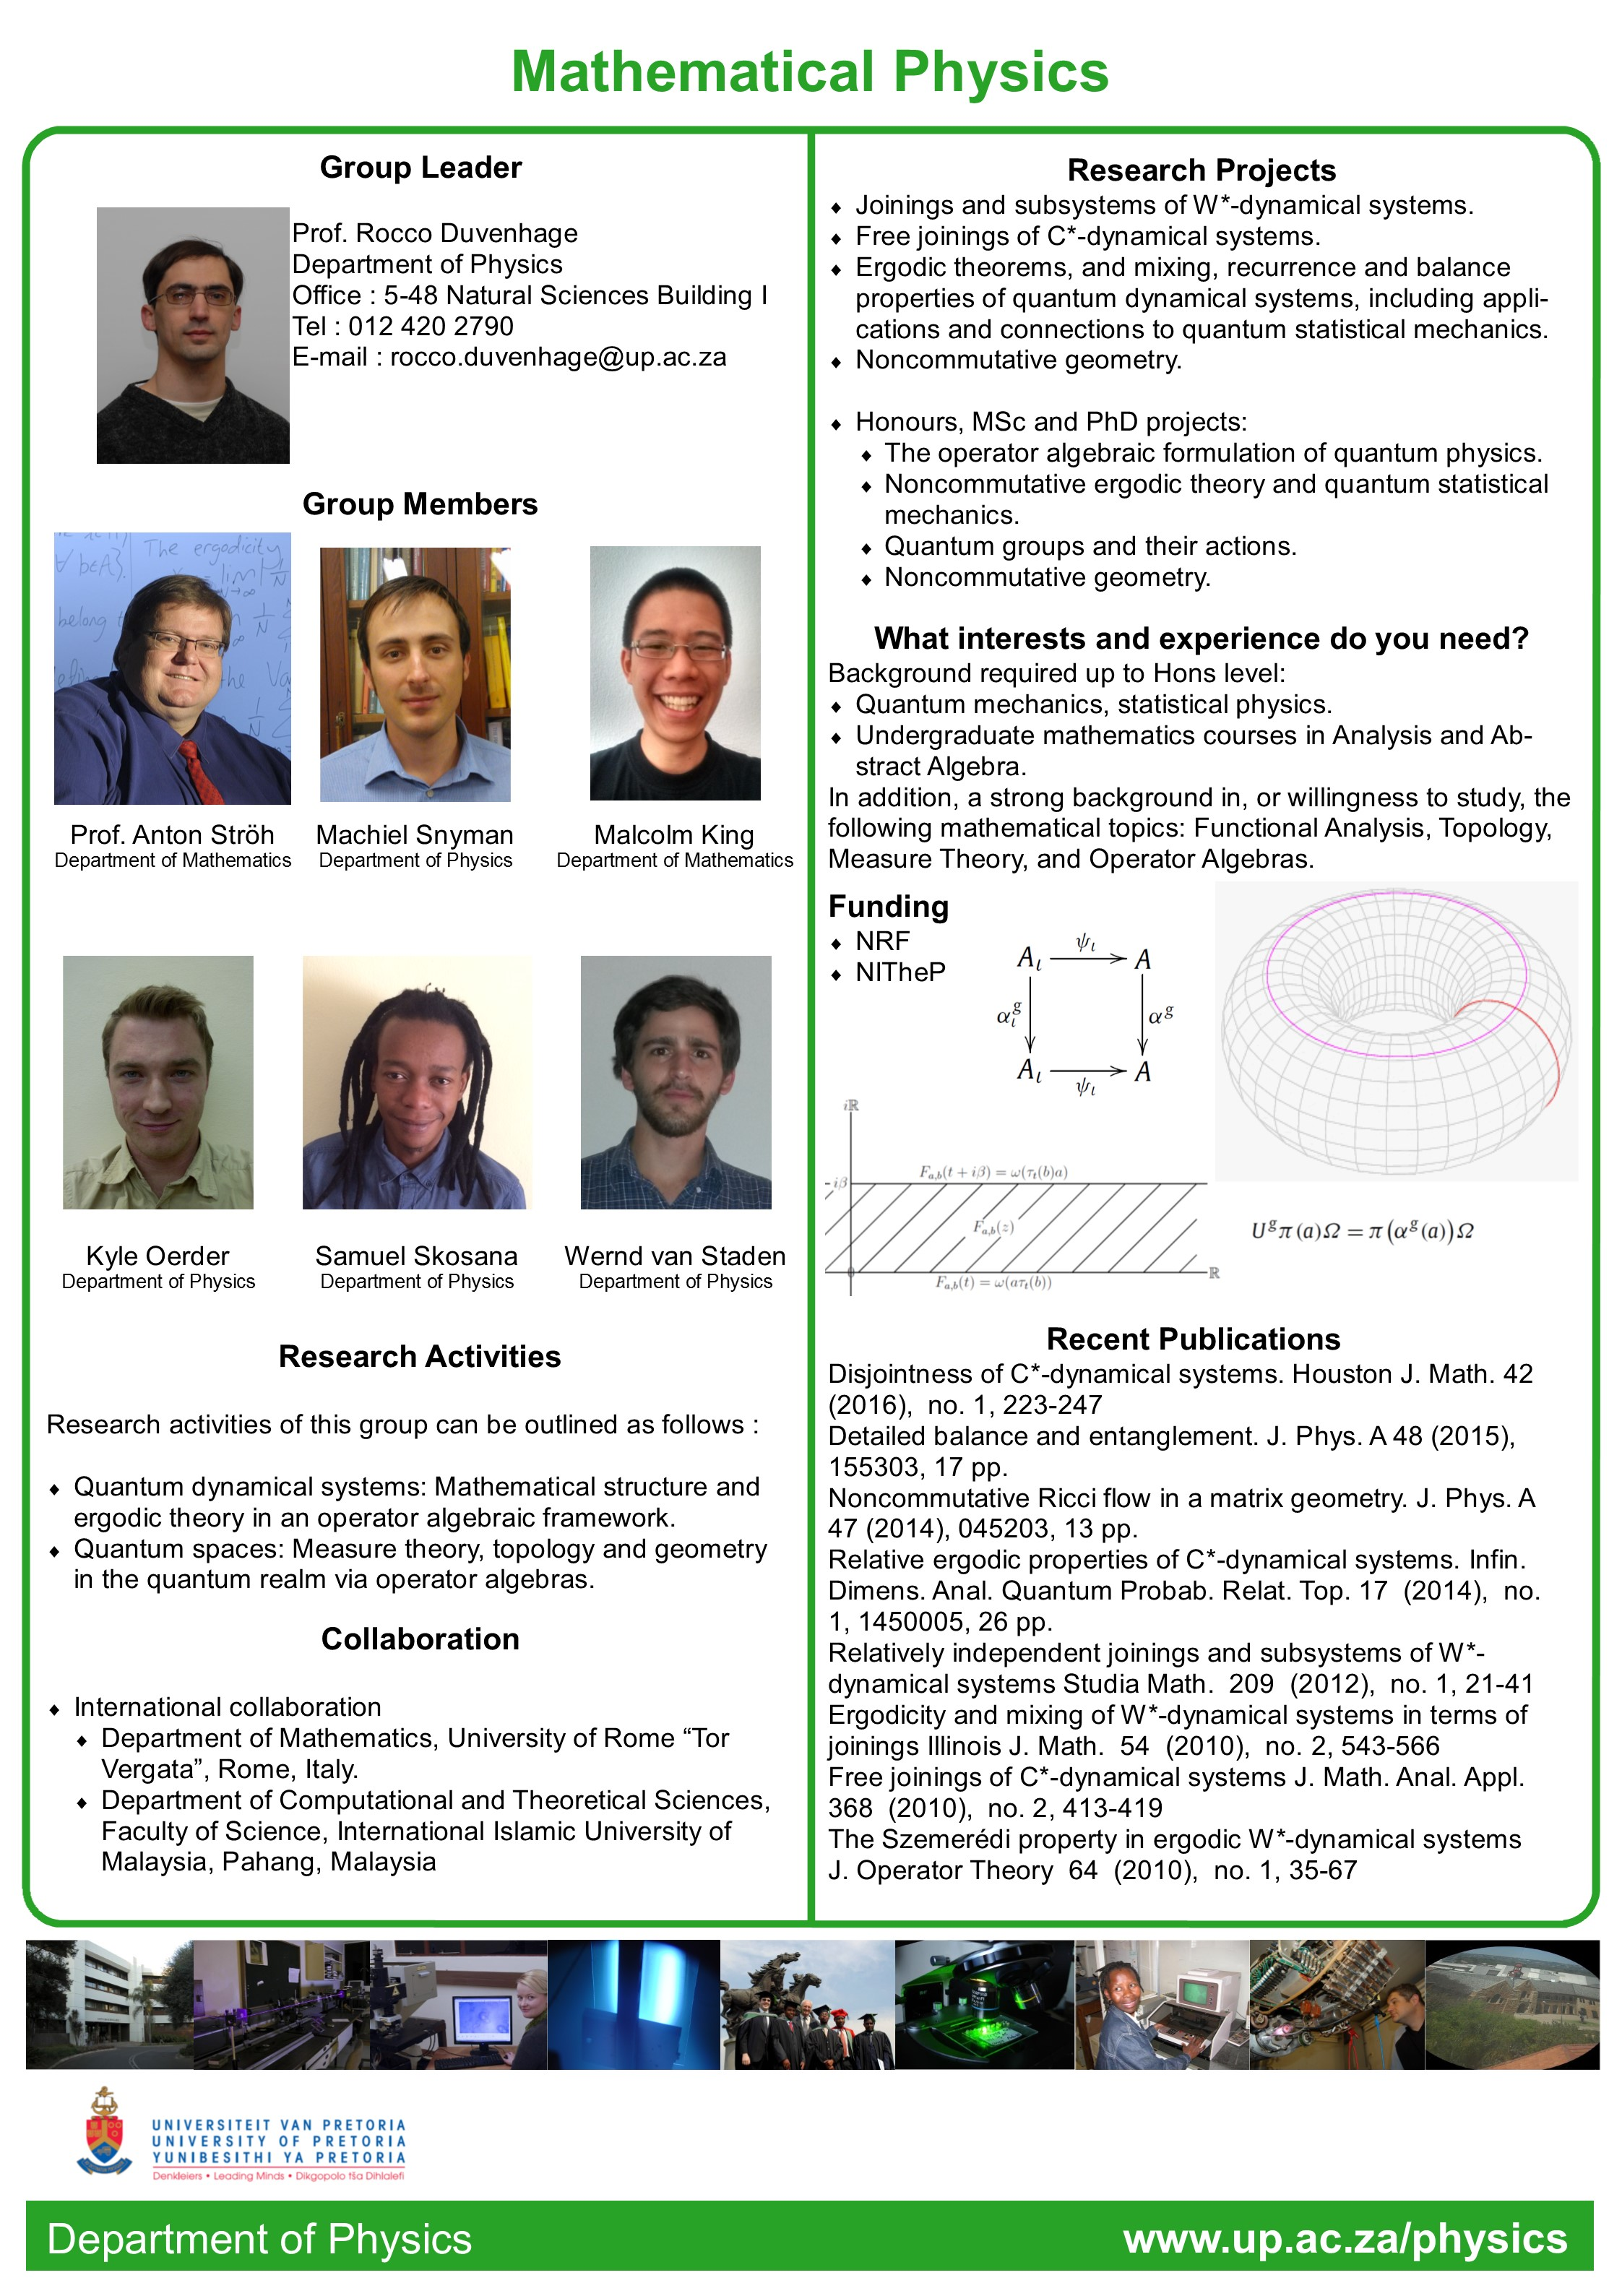 Mathematical physics research poster